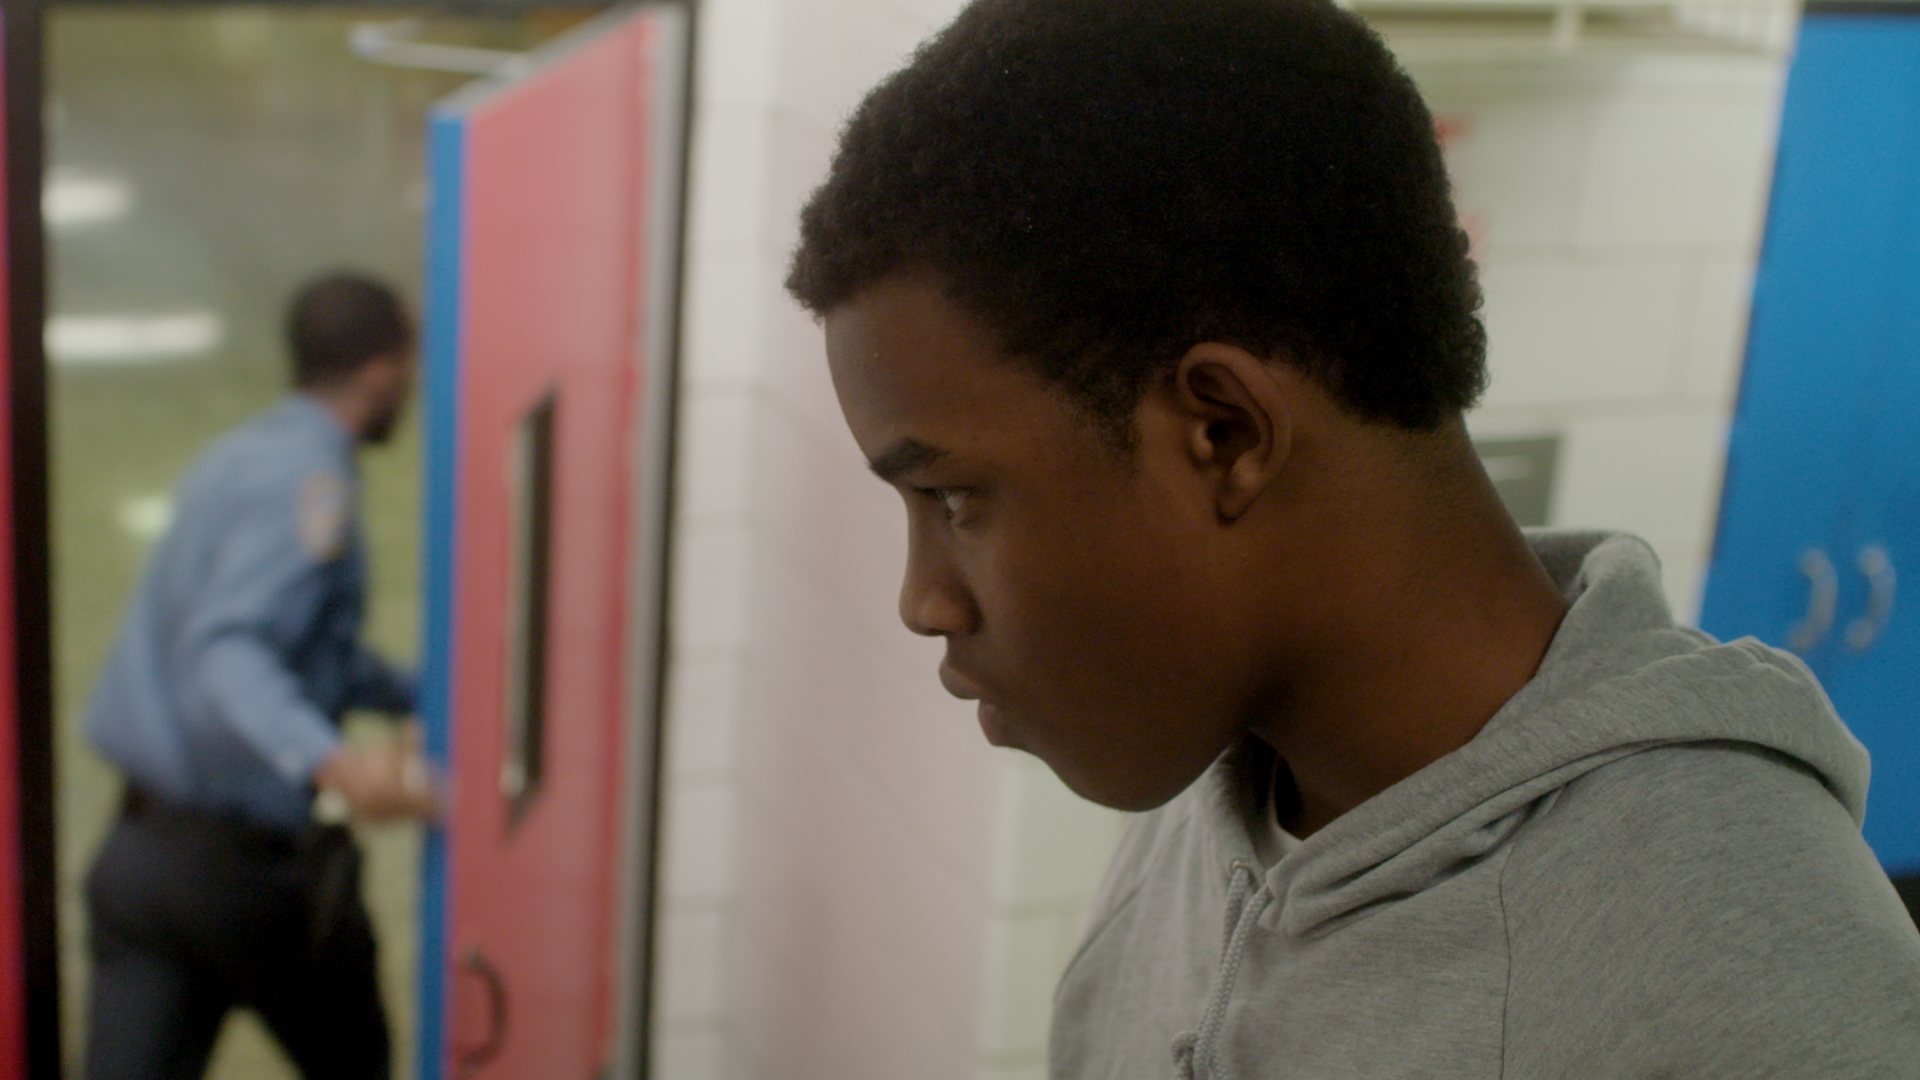 Joseph waits on the stairs as Mike (played Duane Cooper) chases after another student.